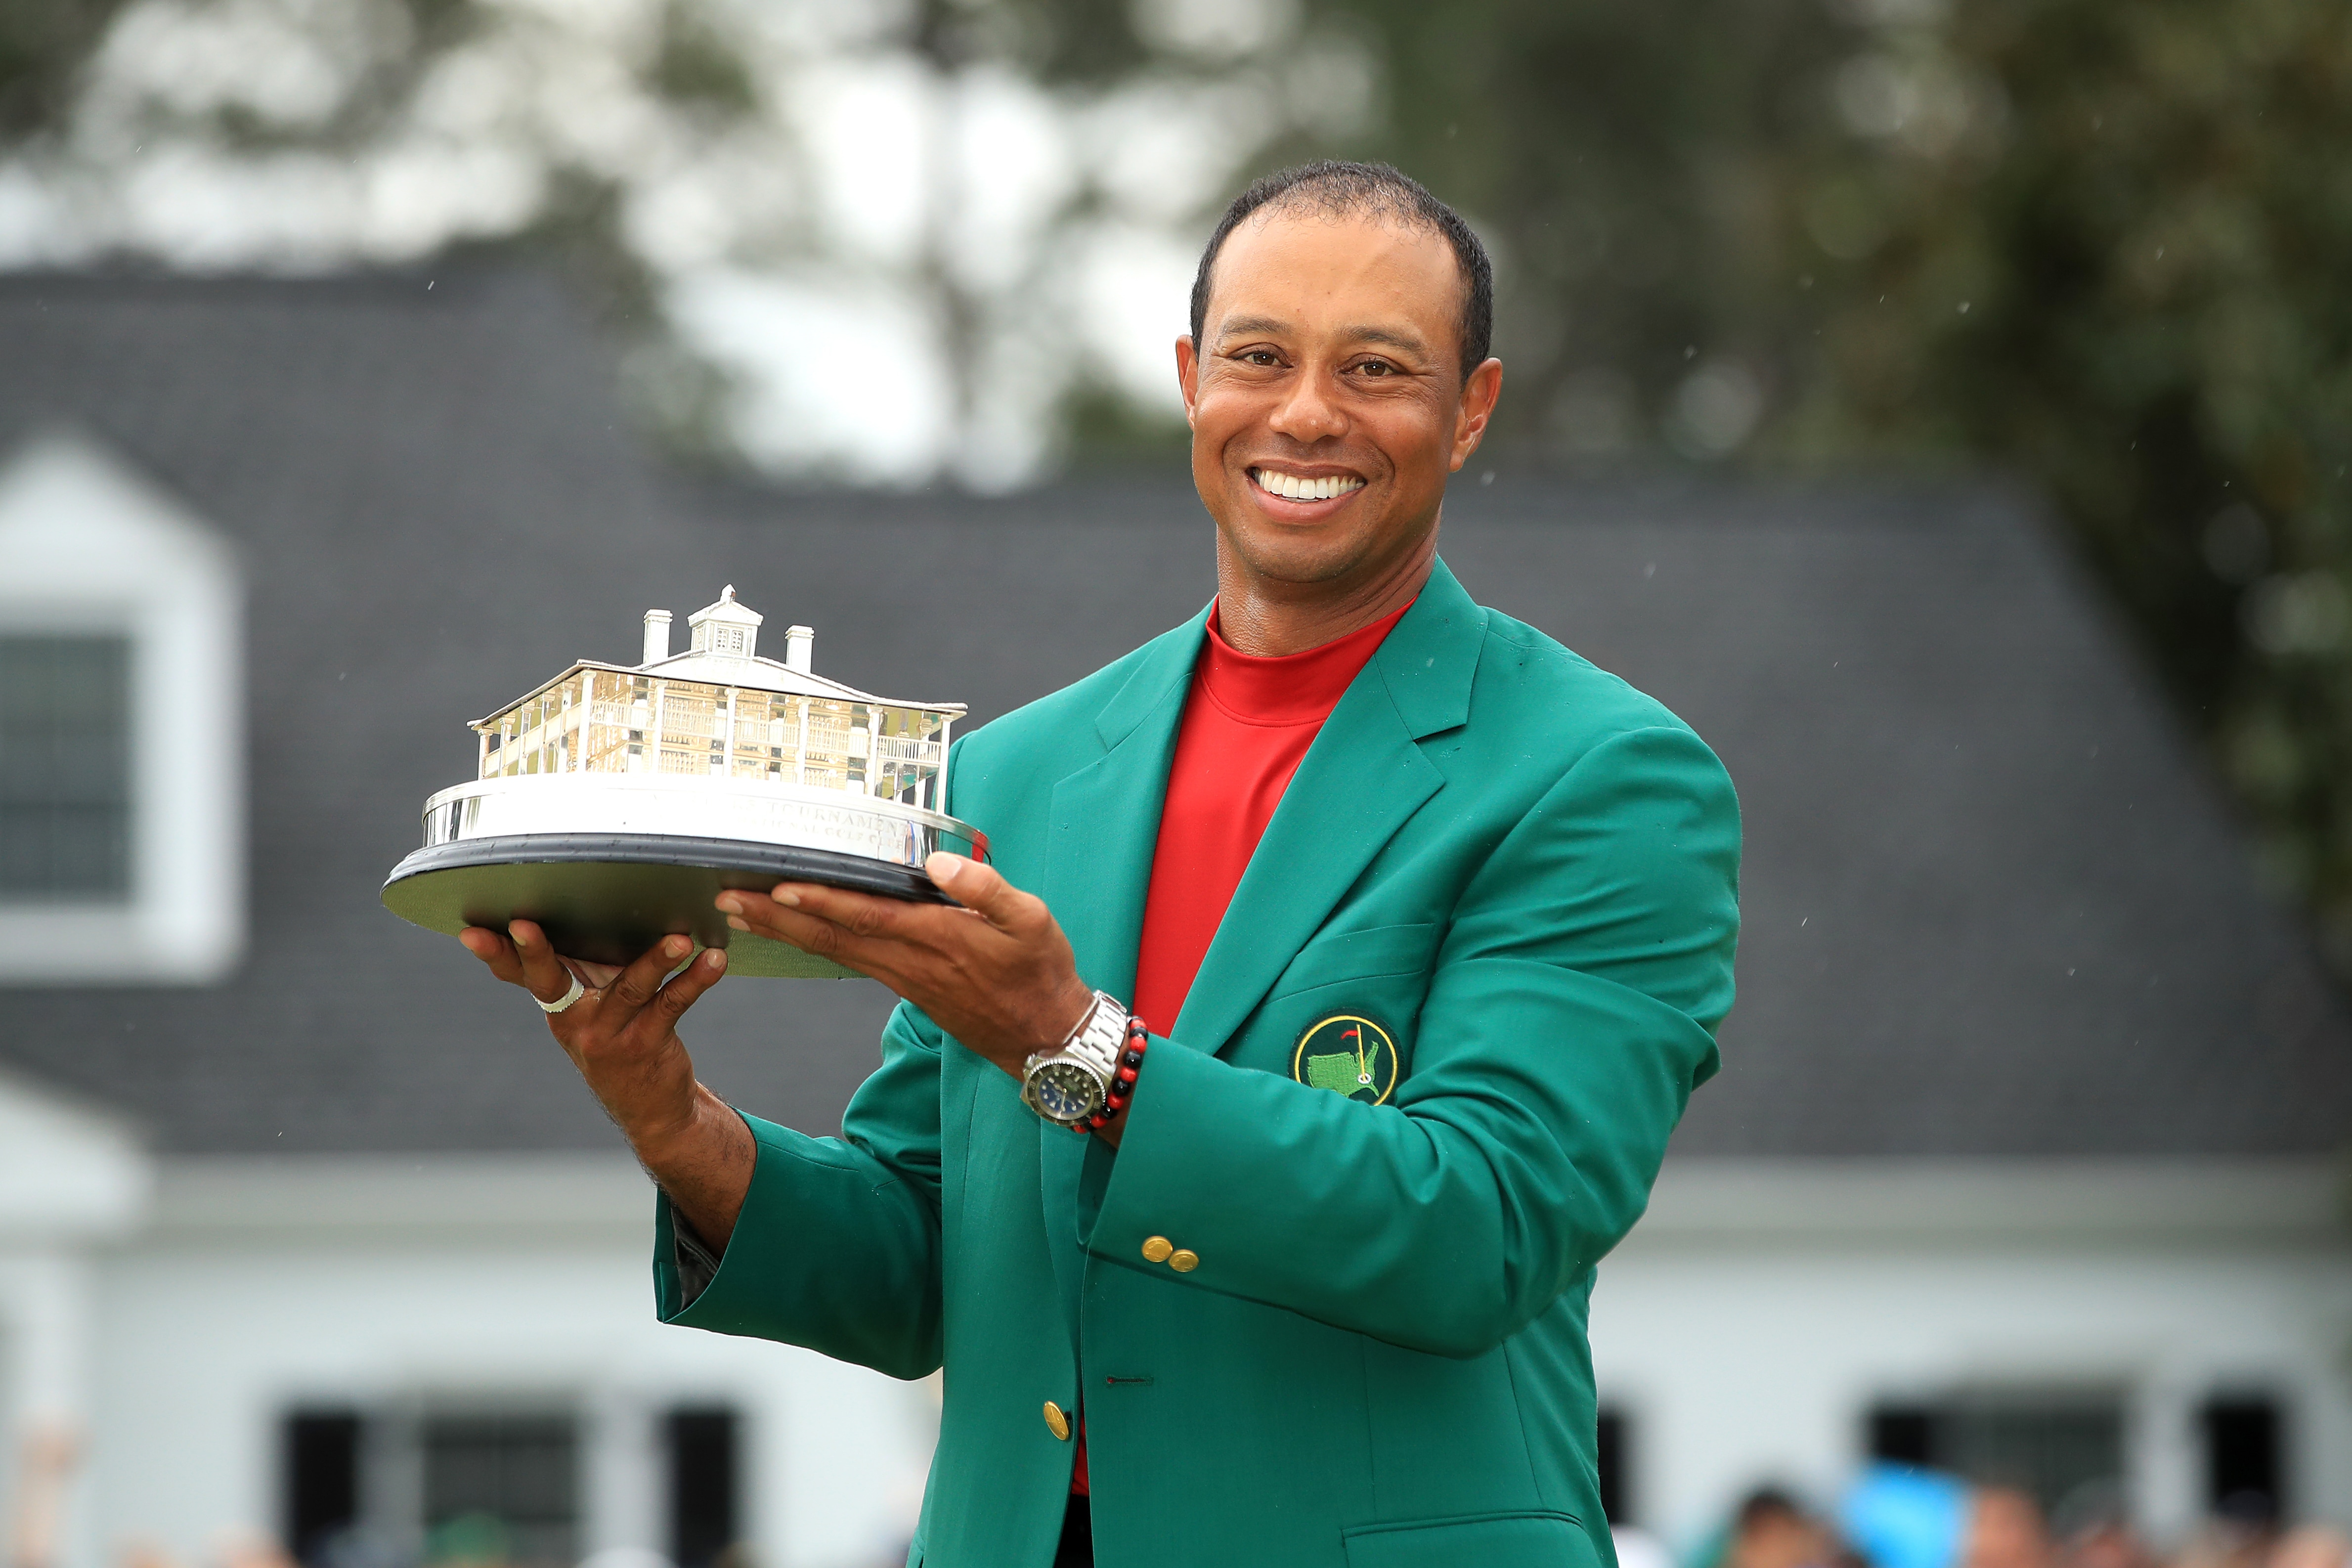 83rd Masters Tournament: Tiger Woods